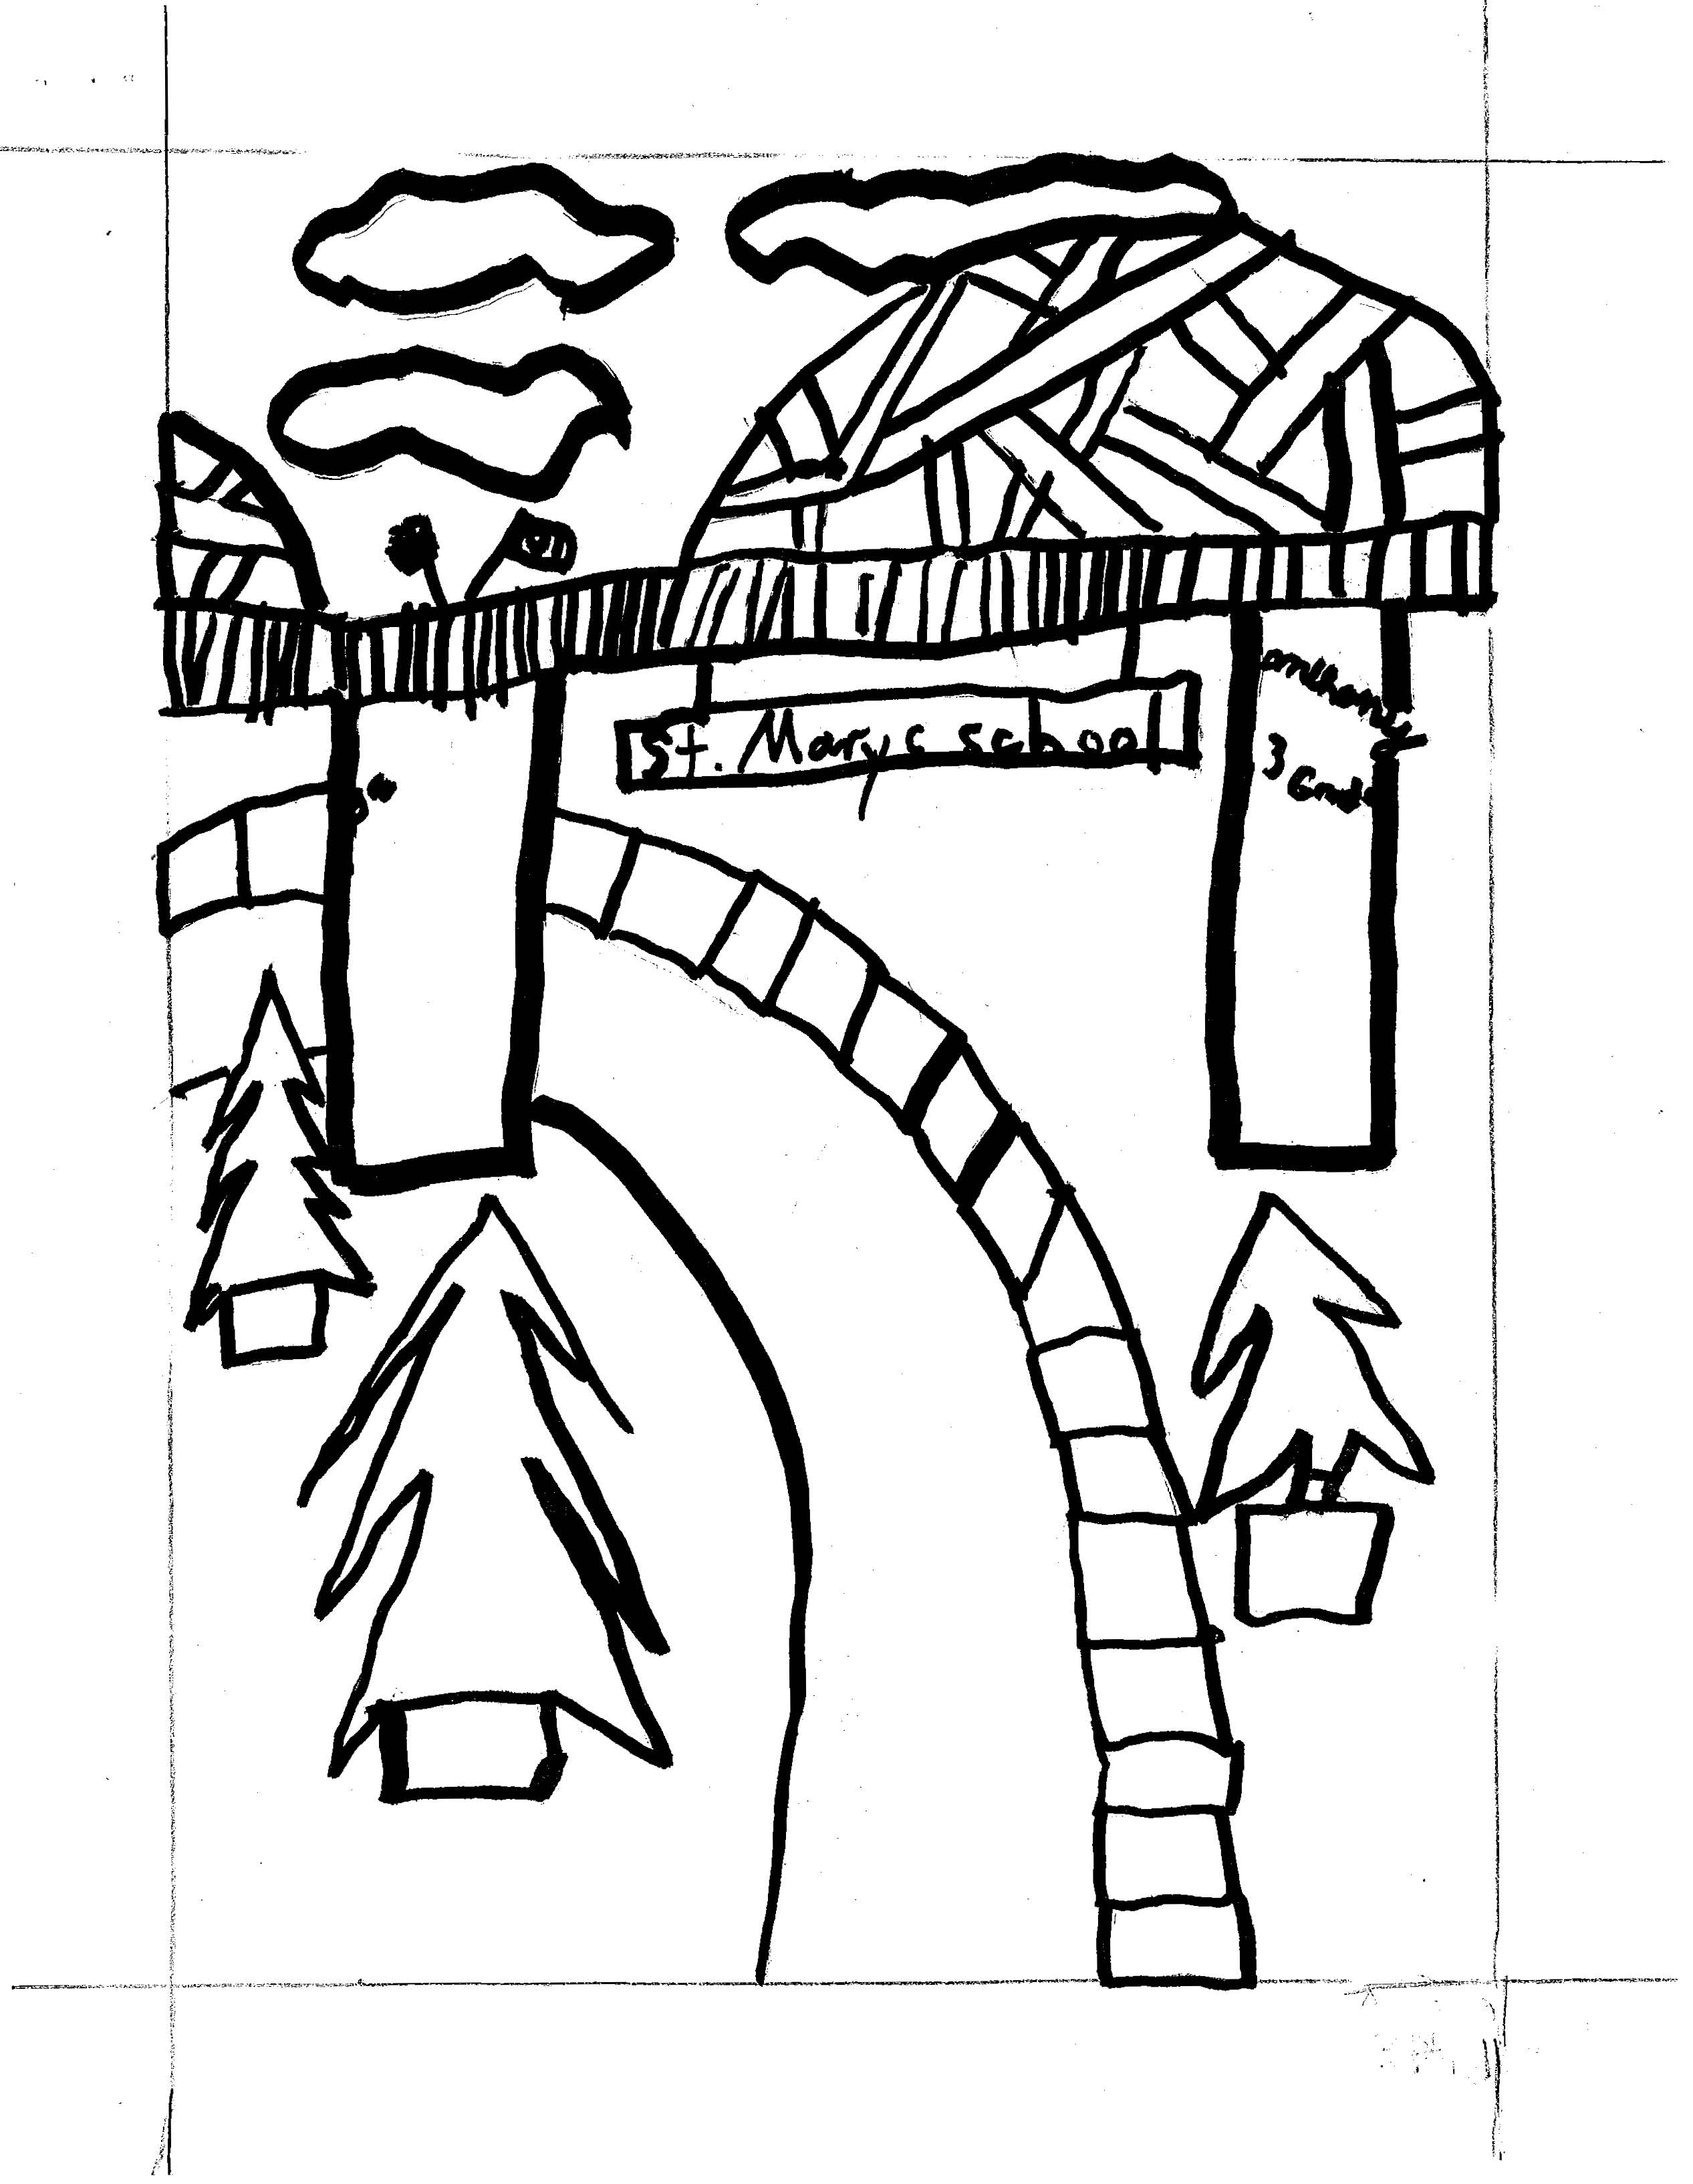 Pharmacy Coloring Contest Sheet Coloring Pages